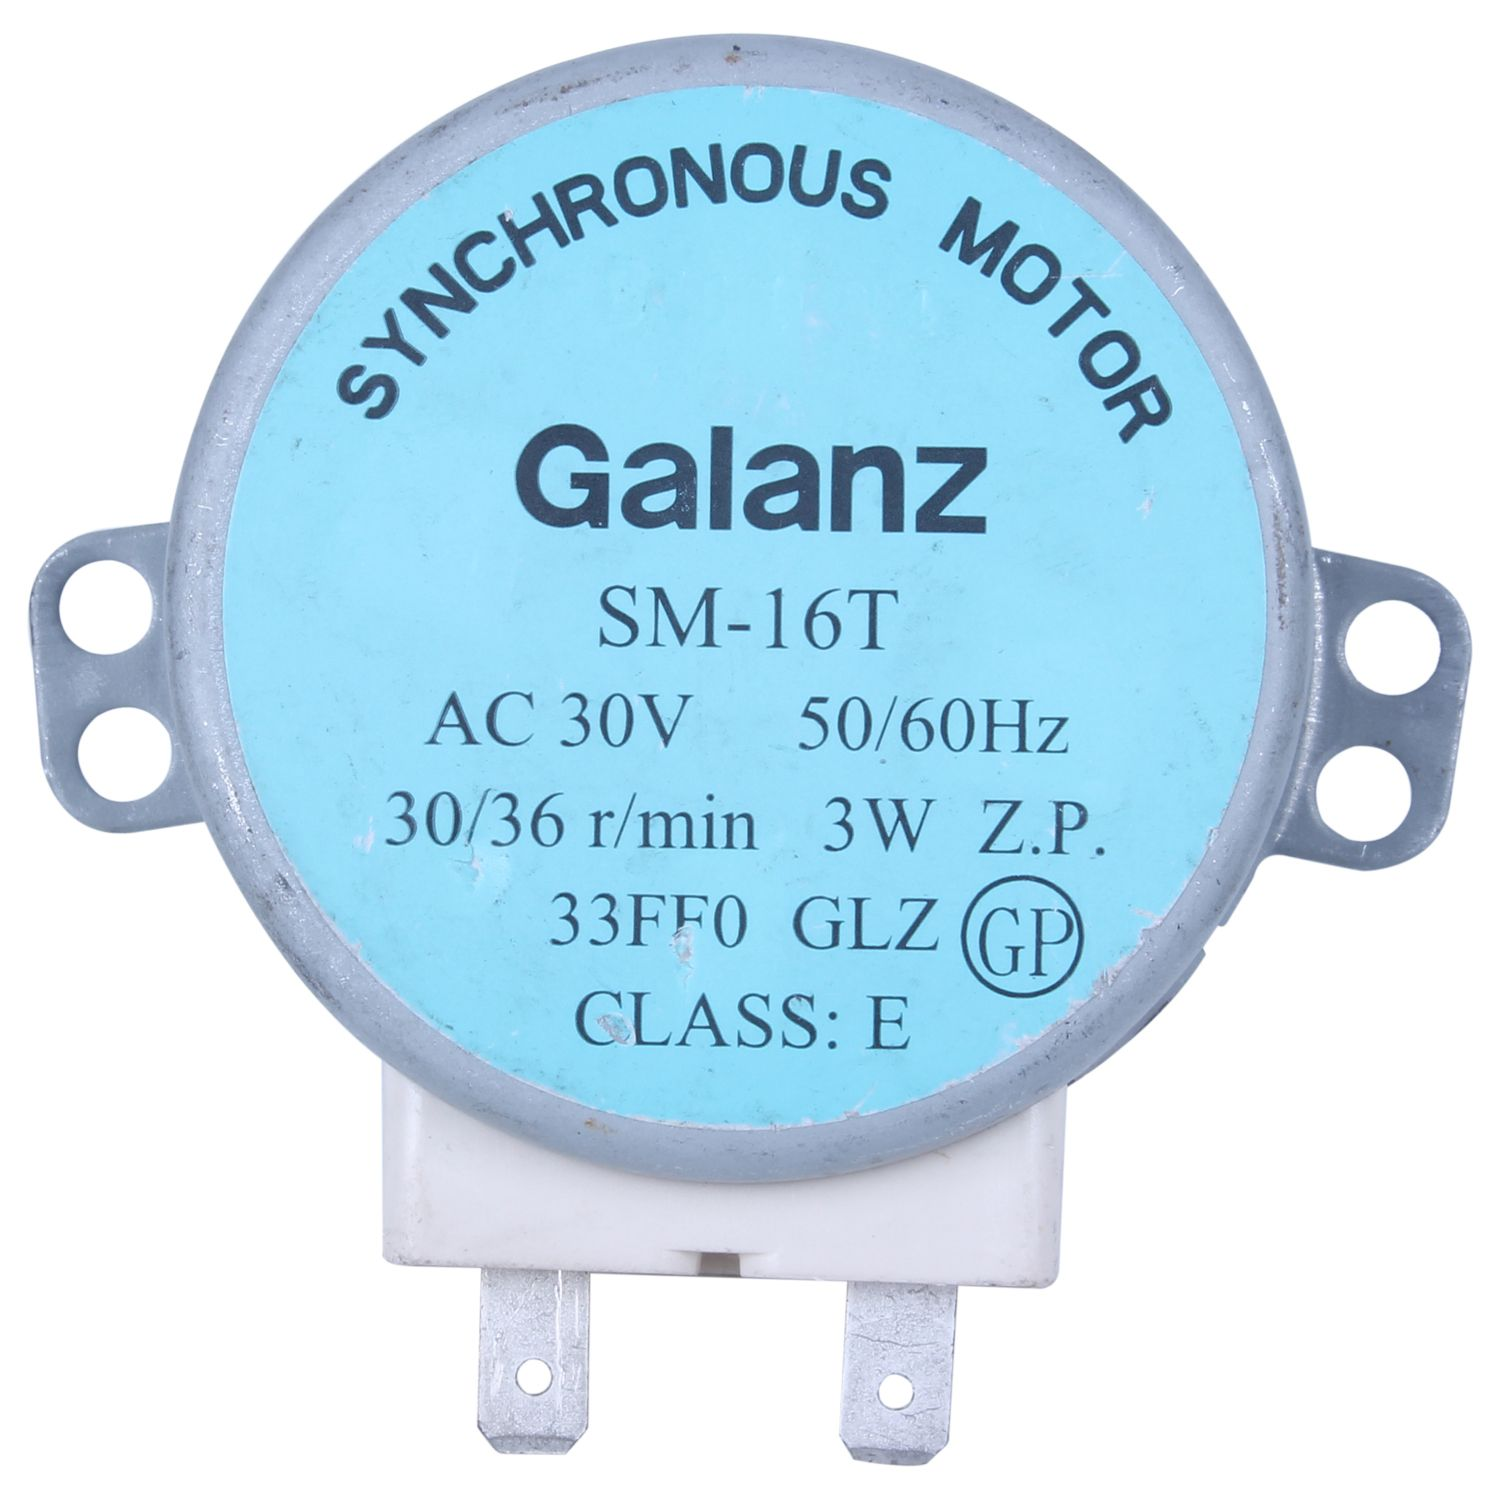 Sm-16t Model microwave oven thermostat AC 30v 3.5 / 4w 30/36 r/min synchronous motor for Galanz microwave oven partSm-16t Model microwave oven thermostat AC 30v 3.5 / 4w 30/36 r/min synchronous motor for Galanz microwave oven part